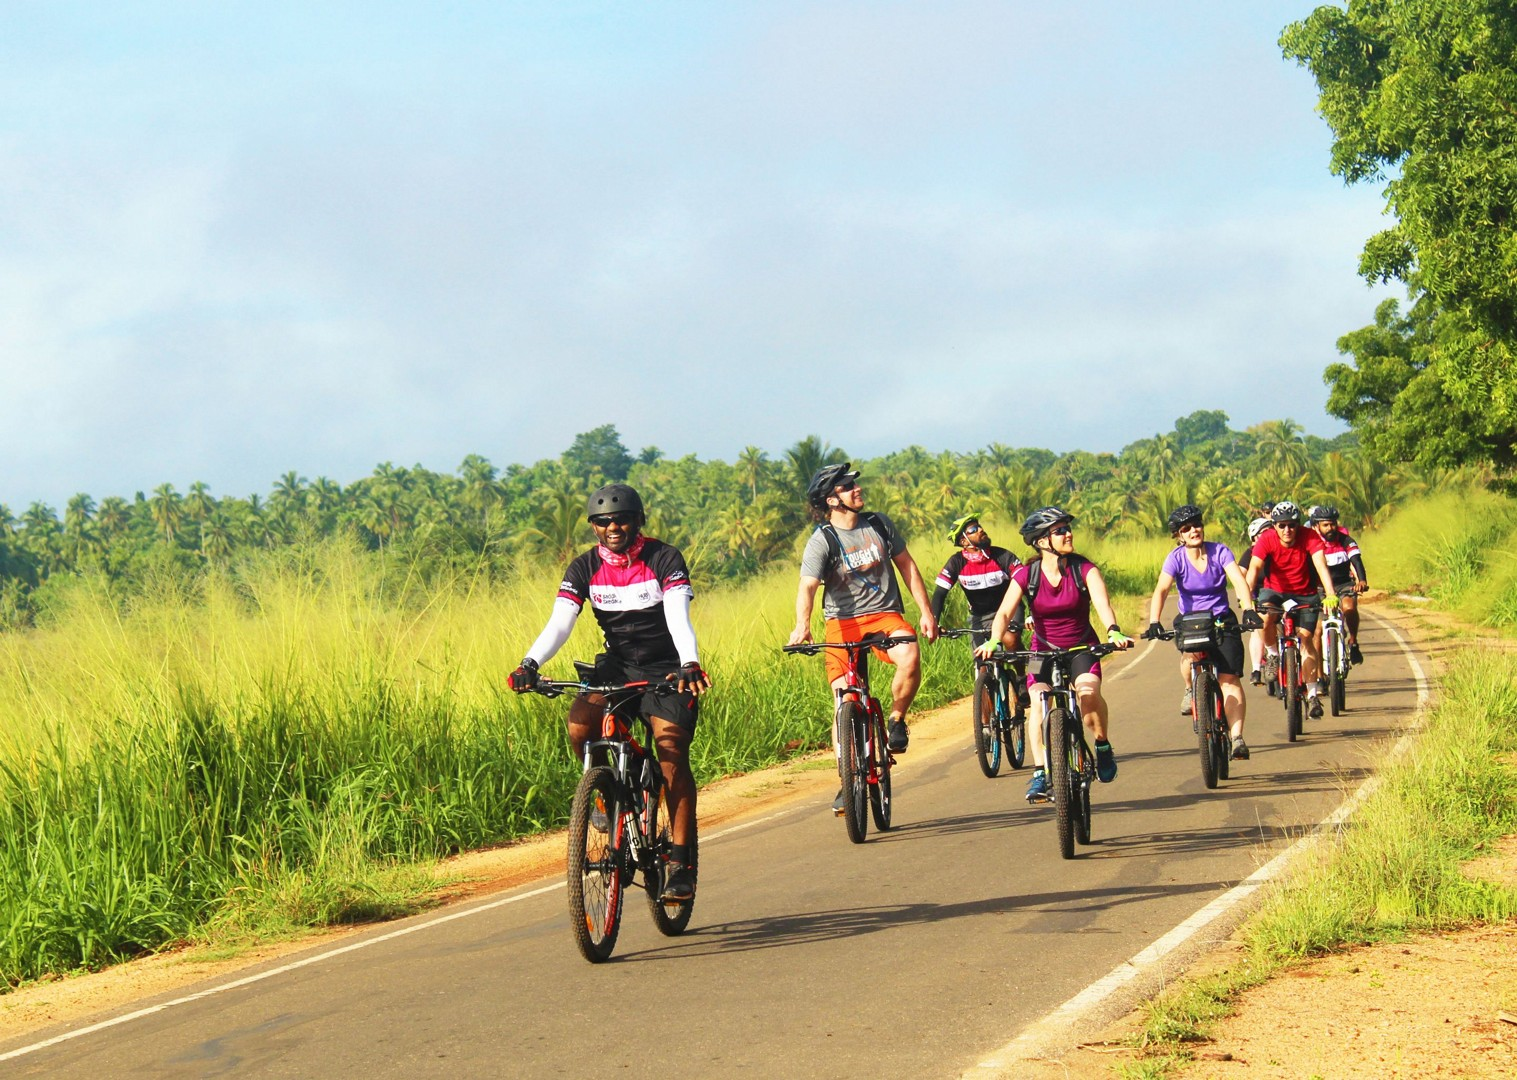 sri-lanka-backroads-and-beaches-guided-group-cycling-holiday.jpg - Sri Lanka - Backroads and Beaches - Cycling Adventures